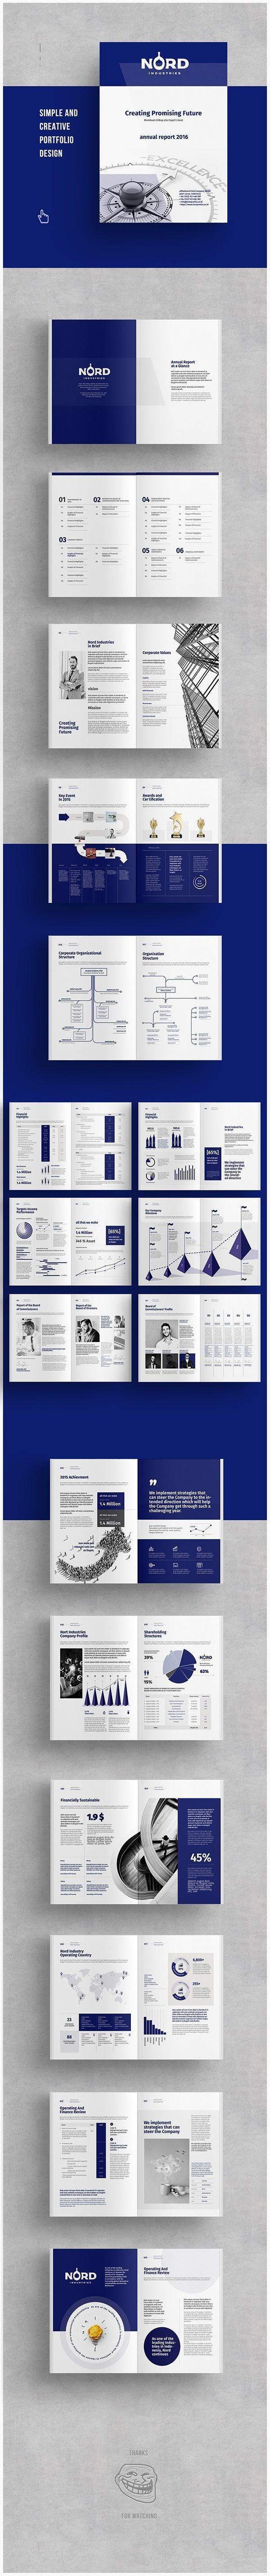 A Annual Report Annual Report Templates Bank Report Brand